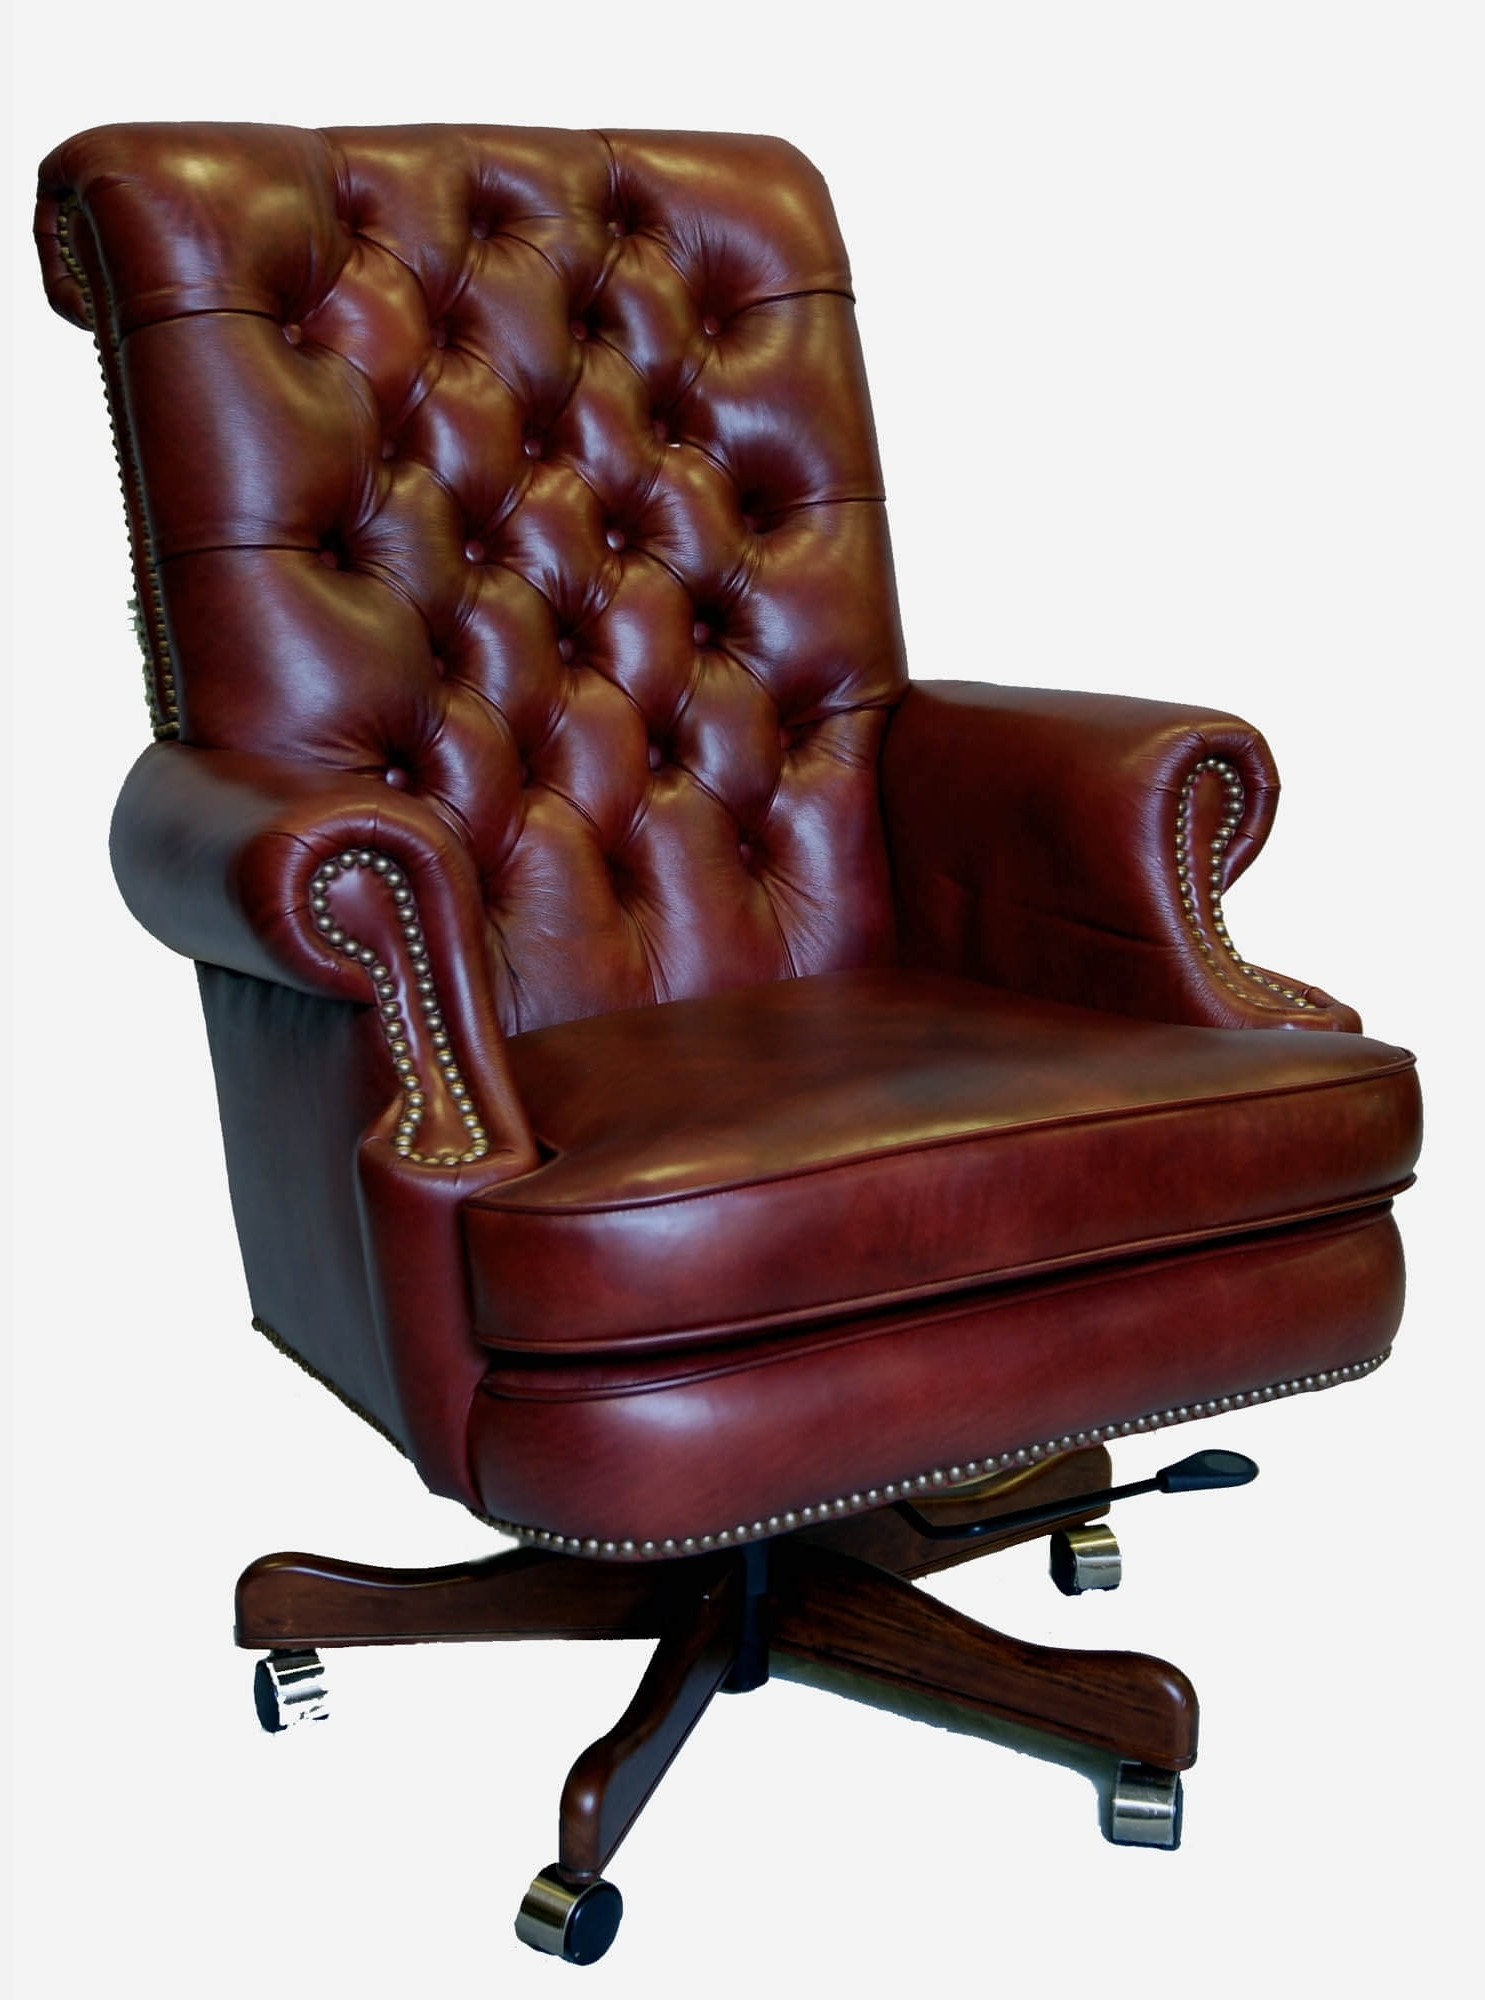 Preferred Office Chair Guide & How To Buy A Desk Chair + Top 10 Chairs With Luxury Executive Office Chairs (View 15 of 20)